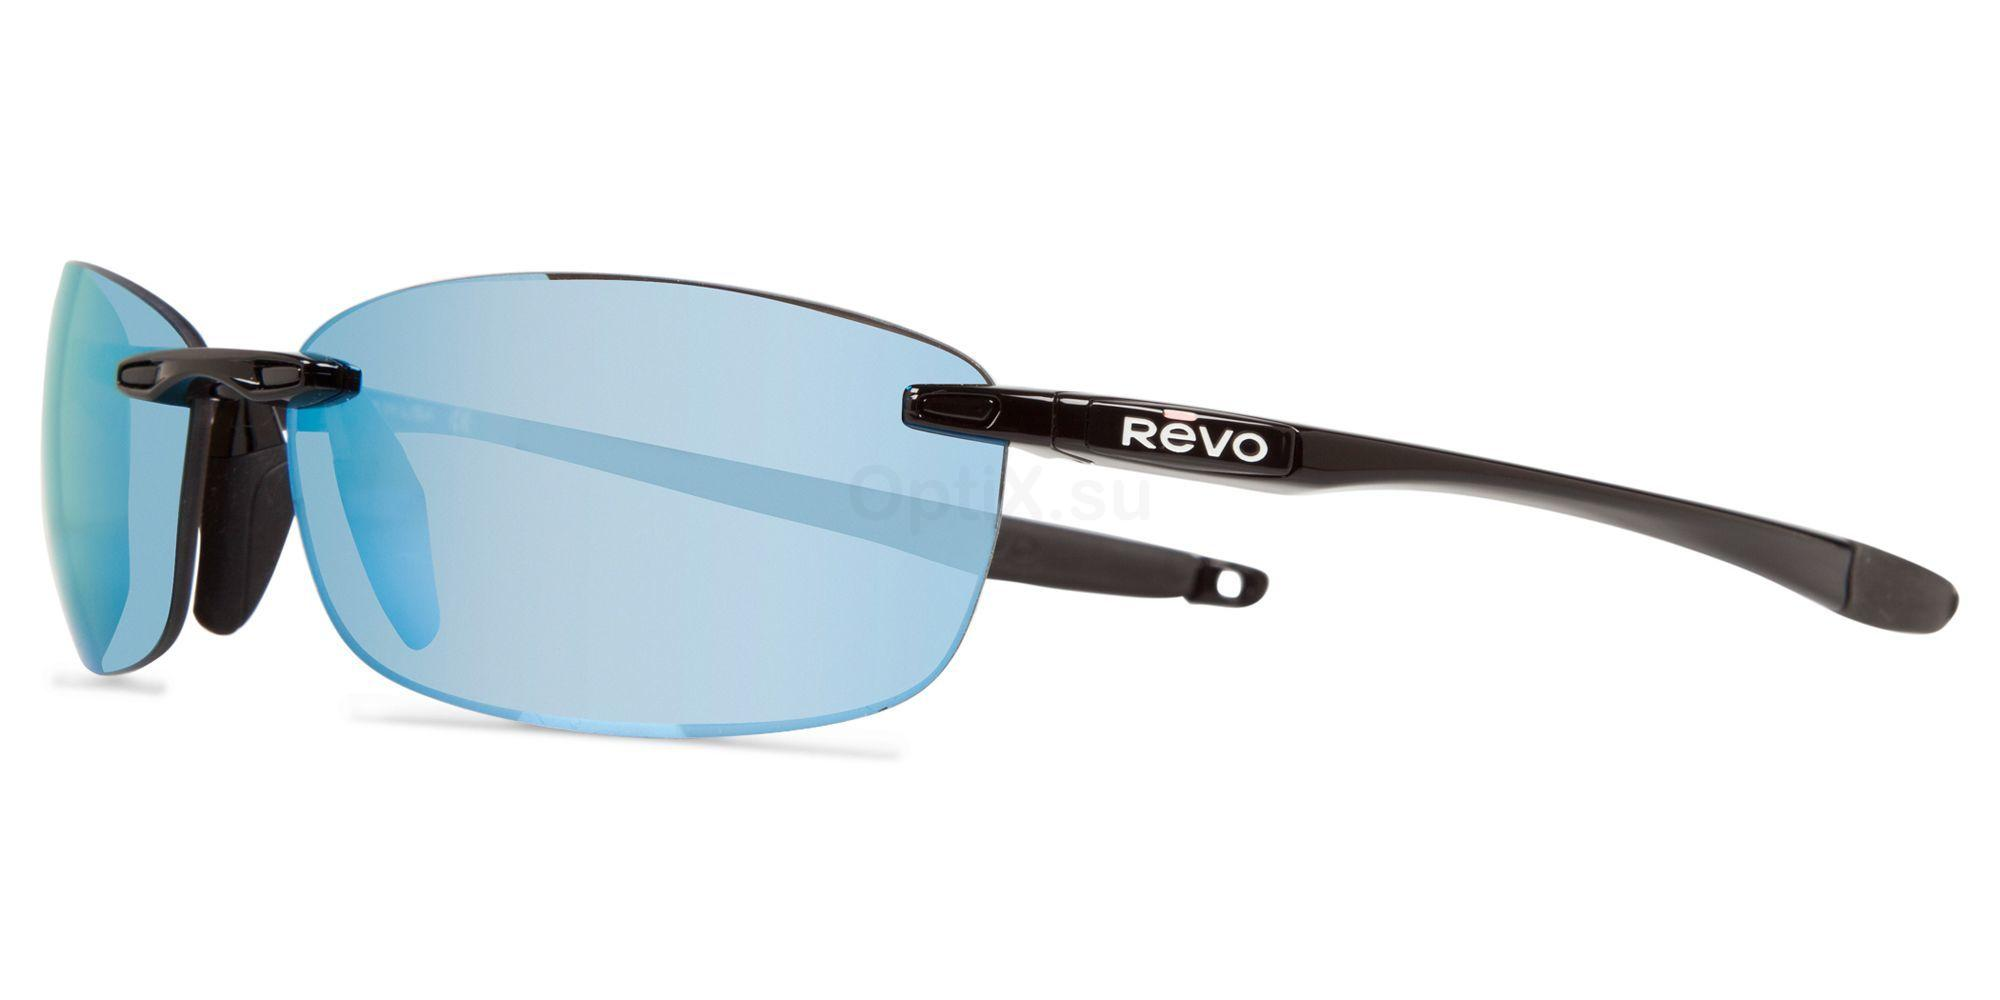 01BL Descend E - 354060 Sunglasses, Revo